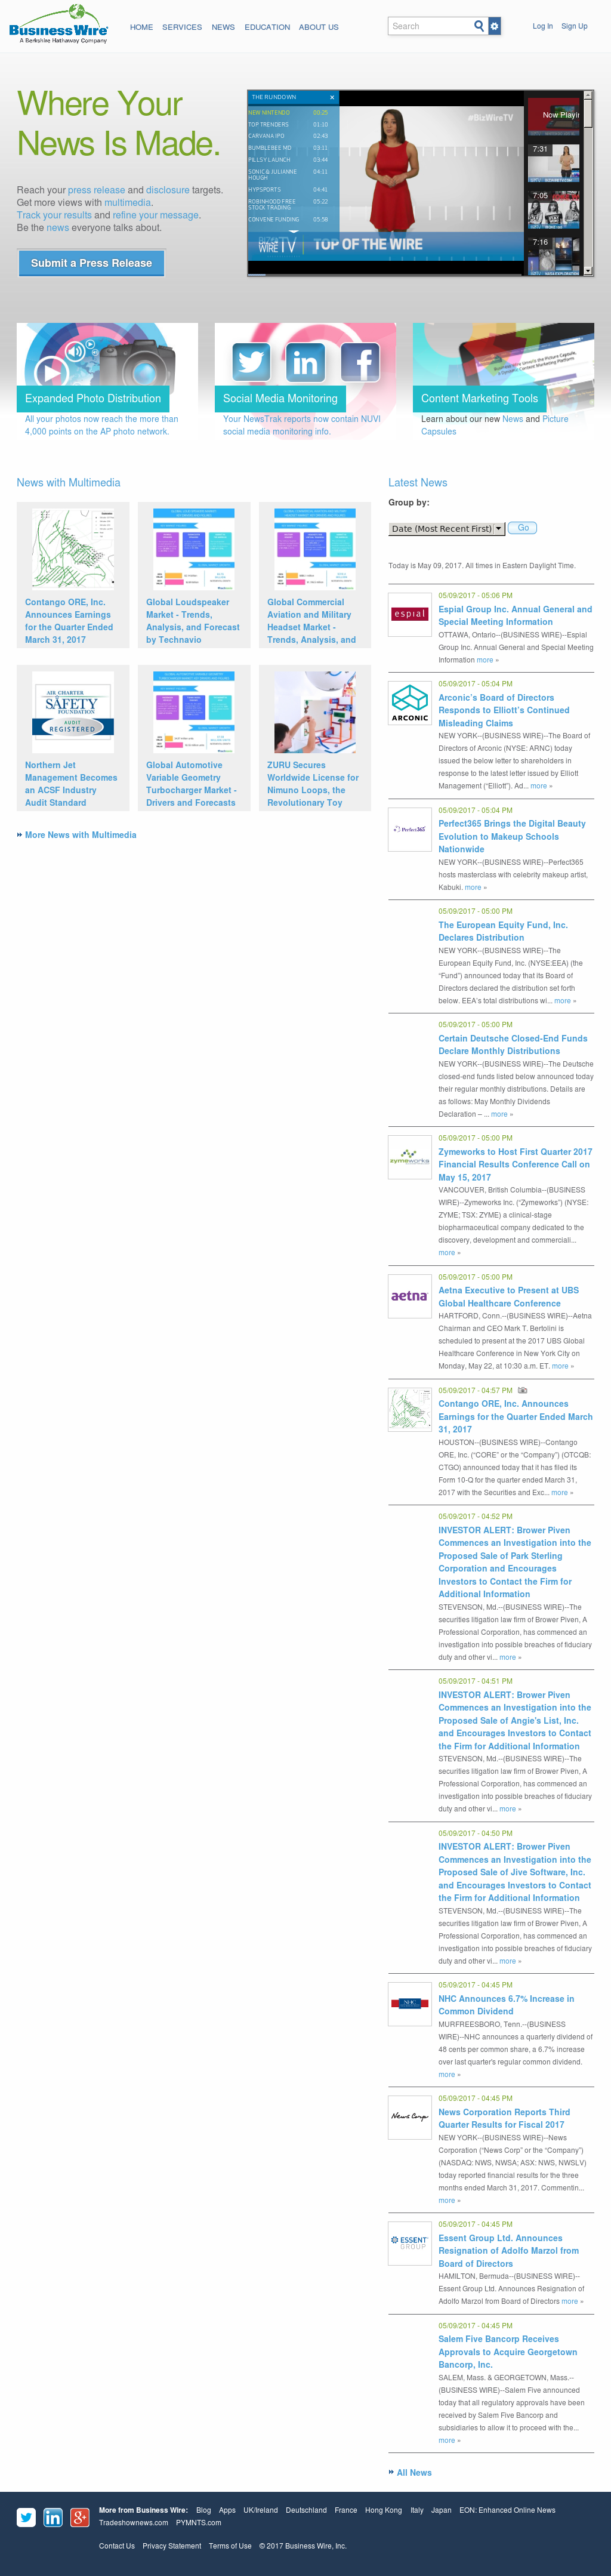 Business Wire Competitors, Revenue and Employees - Owler Company Profile